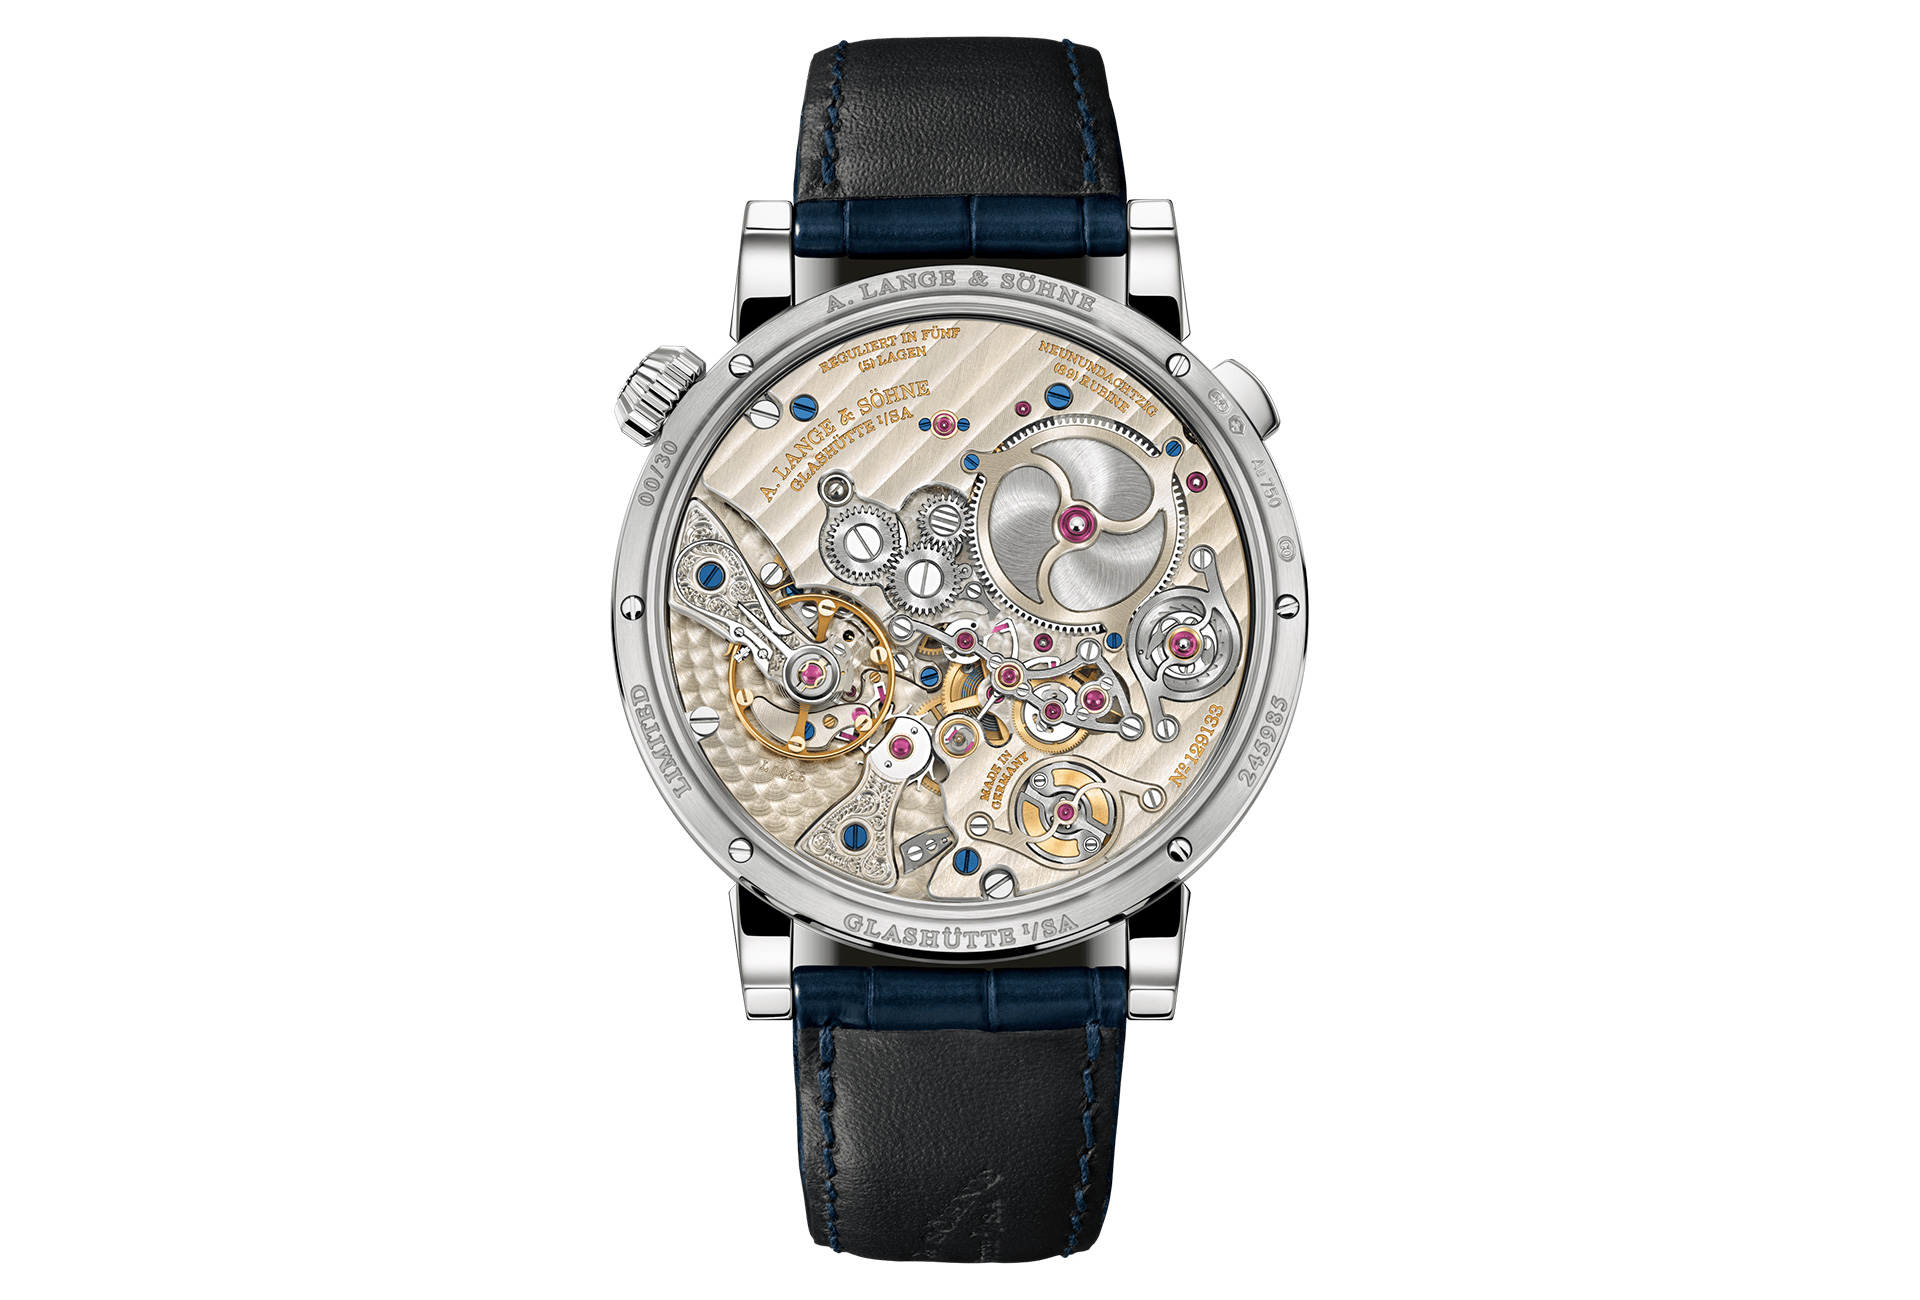 The Top 5 Luxury Timepieces Of 2020 (So Far!) luxury timepiece The Top 5 Luxury Timepieces Of 2020 (So Far!) The Top 5 Luxury Timepieces Of 2020 So Far 3 pantone color of the year 2021's Pantone Color Of The Year Is Out: Not One But Two Hues! The Top 5 Luxury Timepieces Of 2020 So Far 3